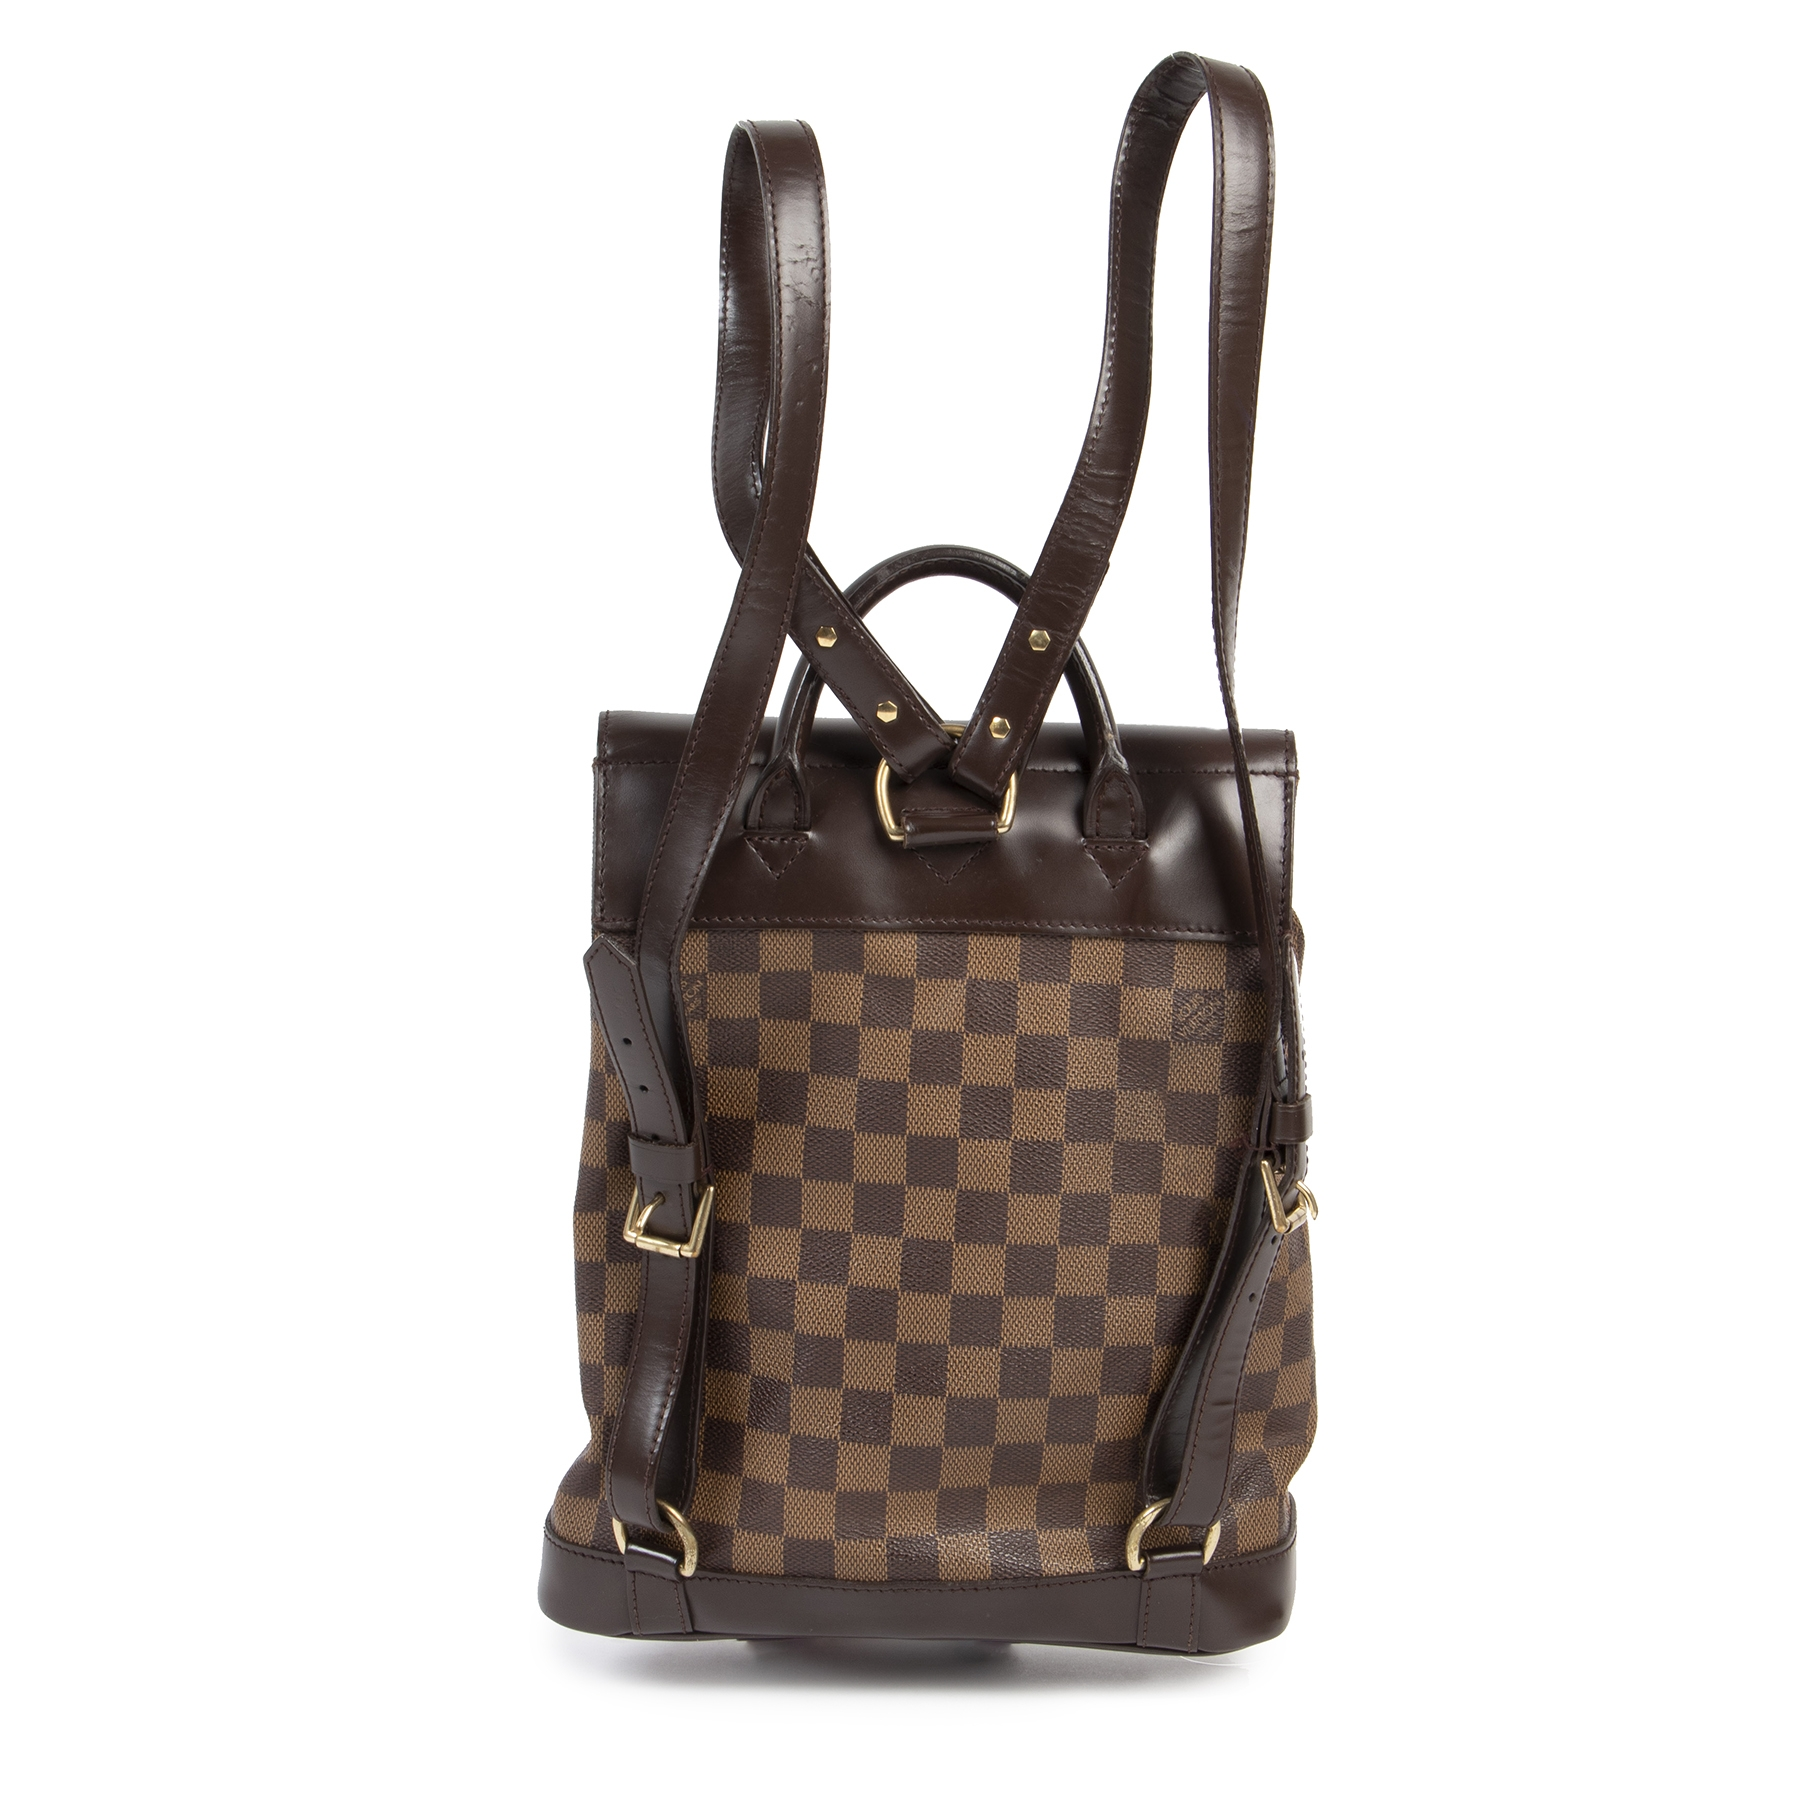 Authentic secondhand Louis Vuitton Soho Damier Ebene Backpack designer bags fashion luxury vintage webshop safe secure online shopping